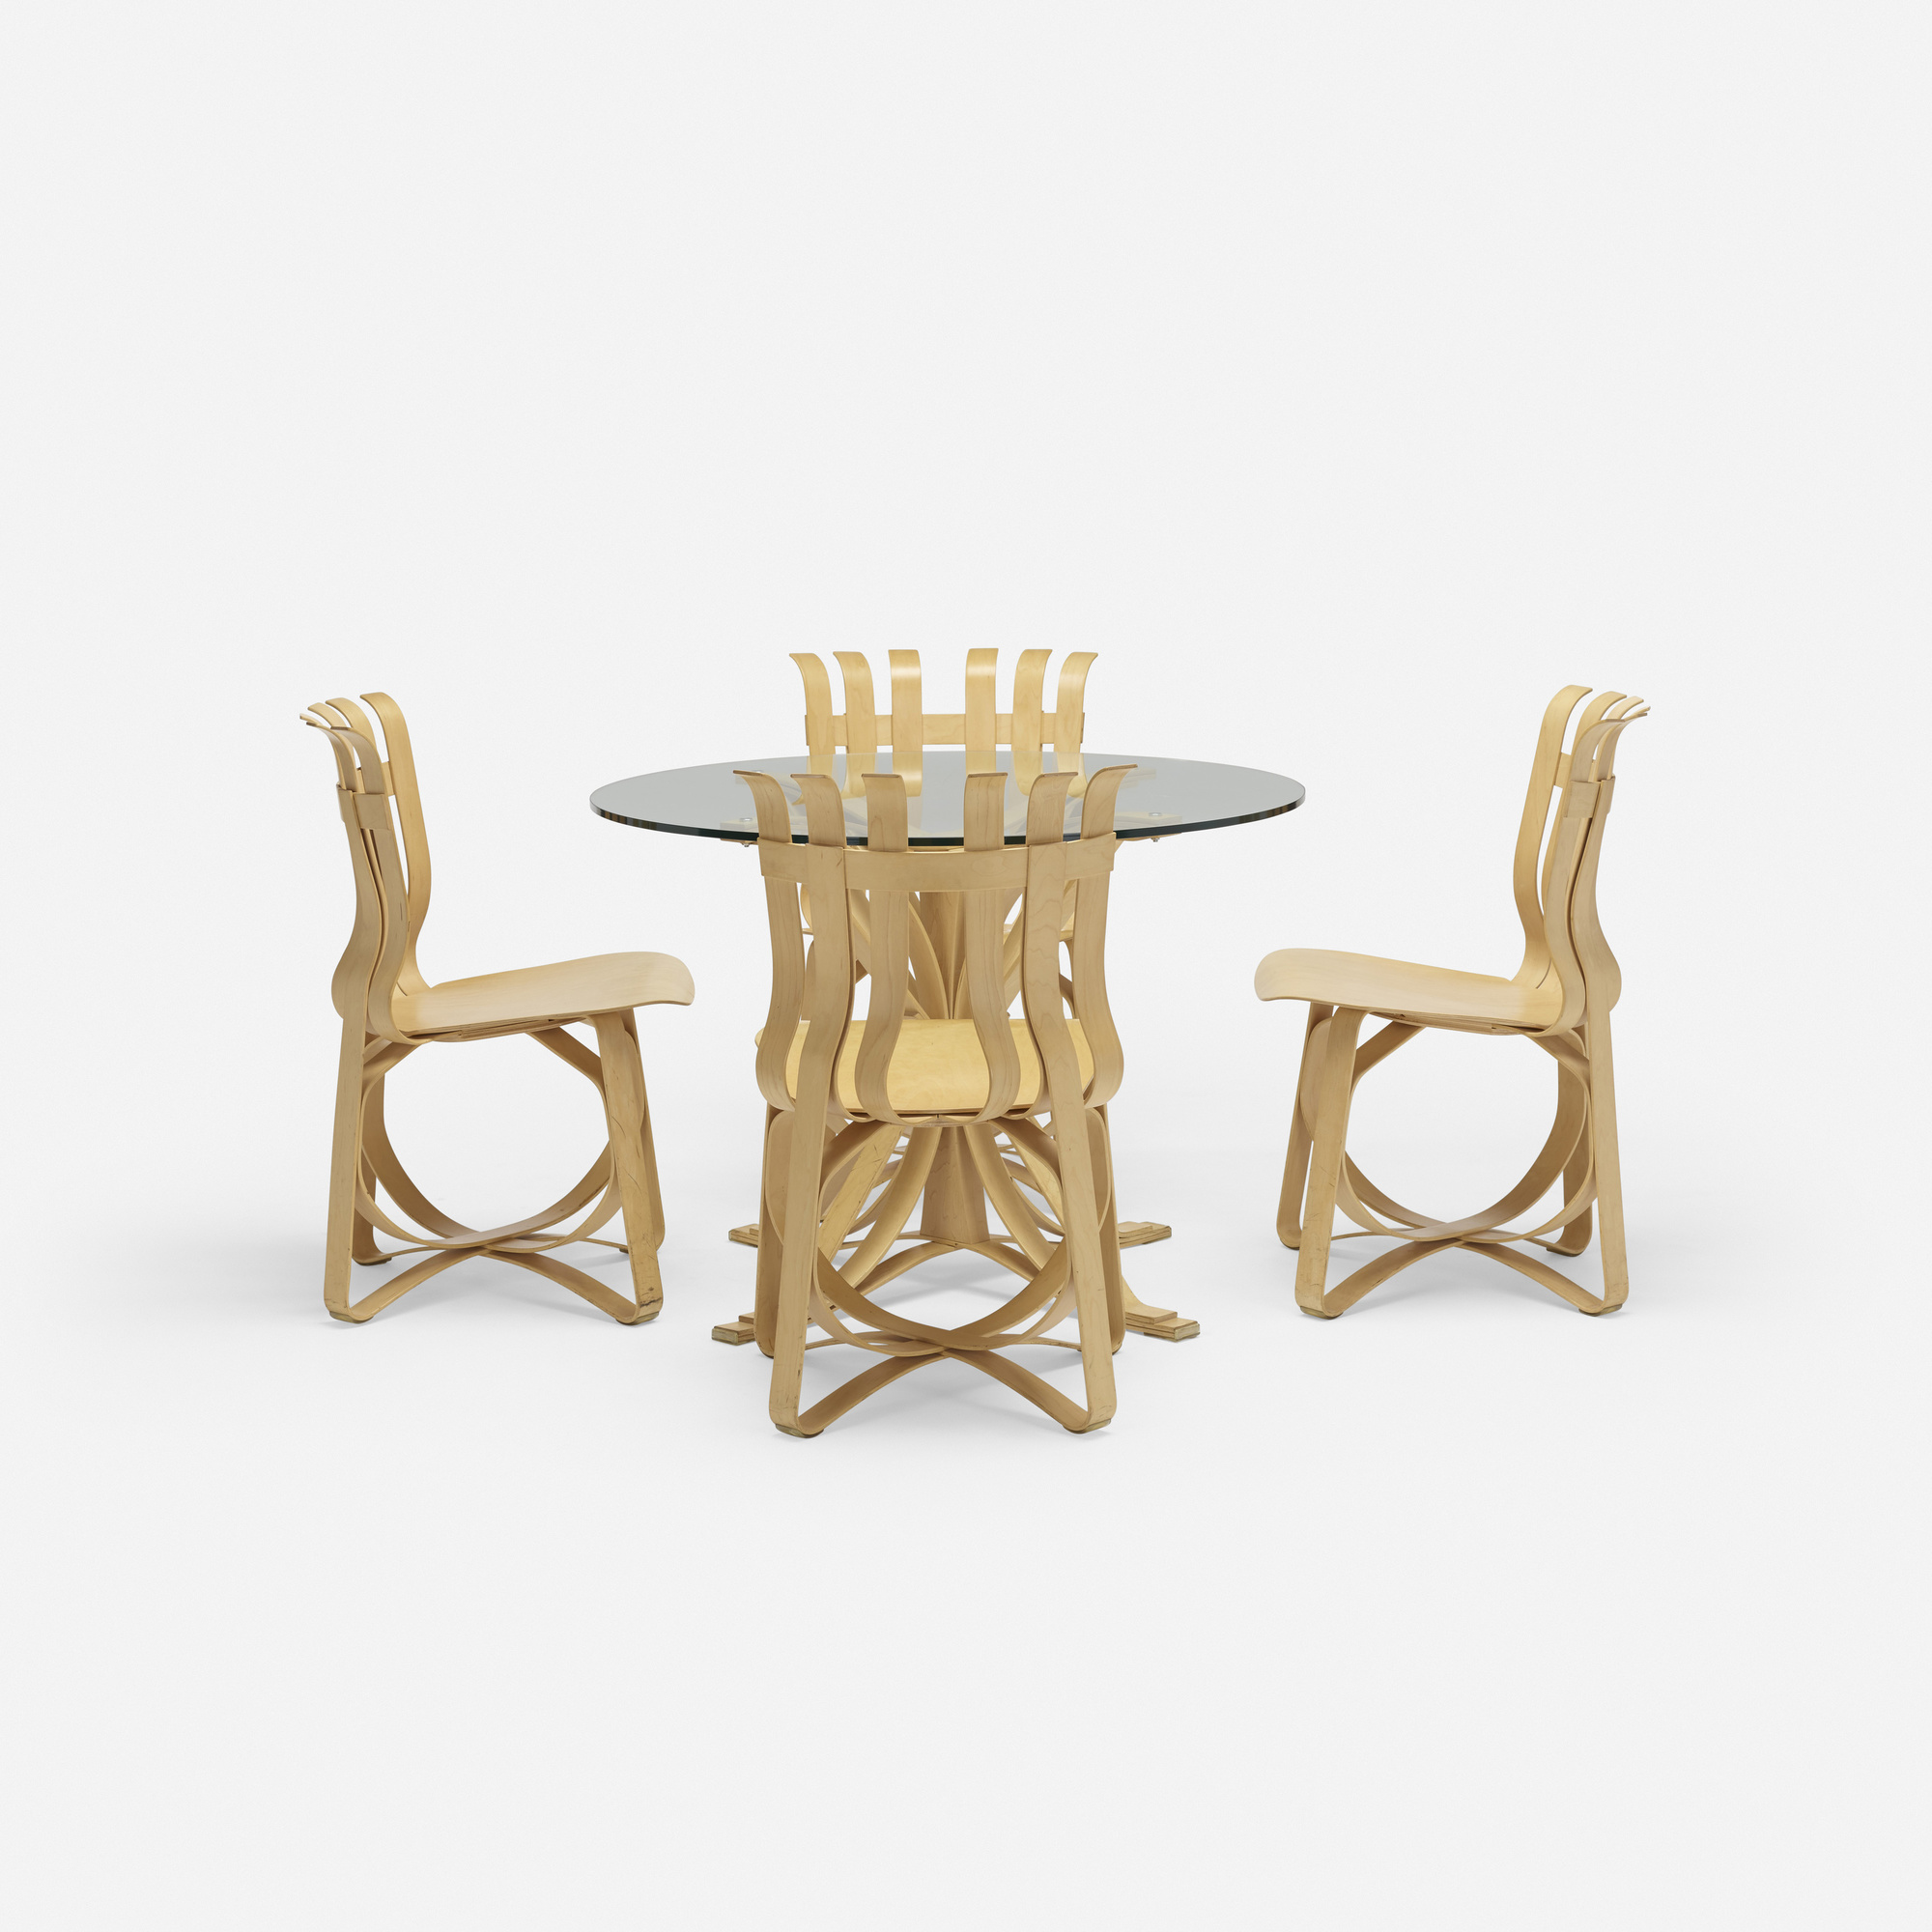 304: Frank Gehry / Power Play dining set (2 of 3)